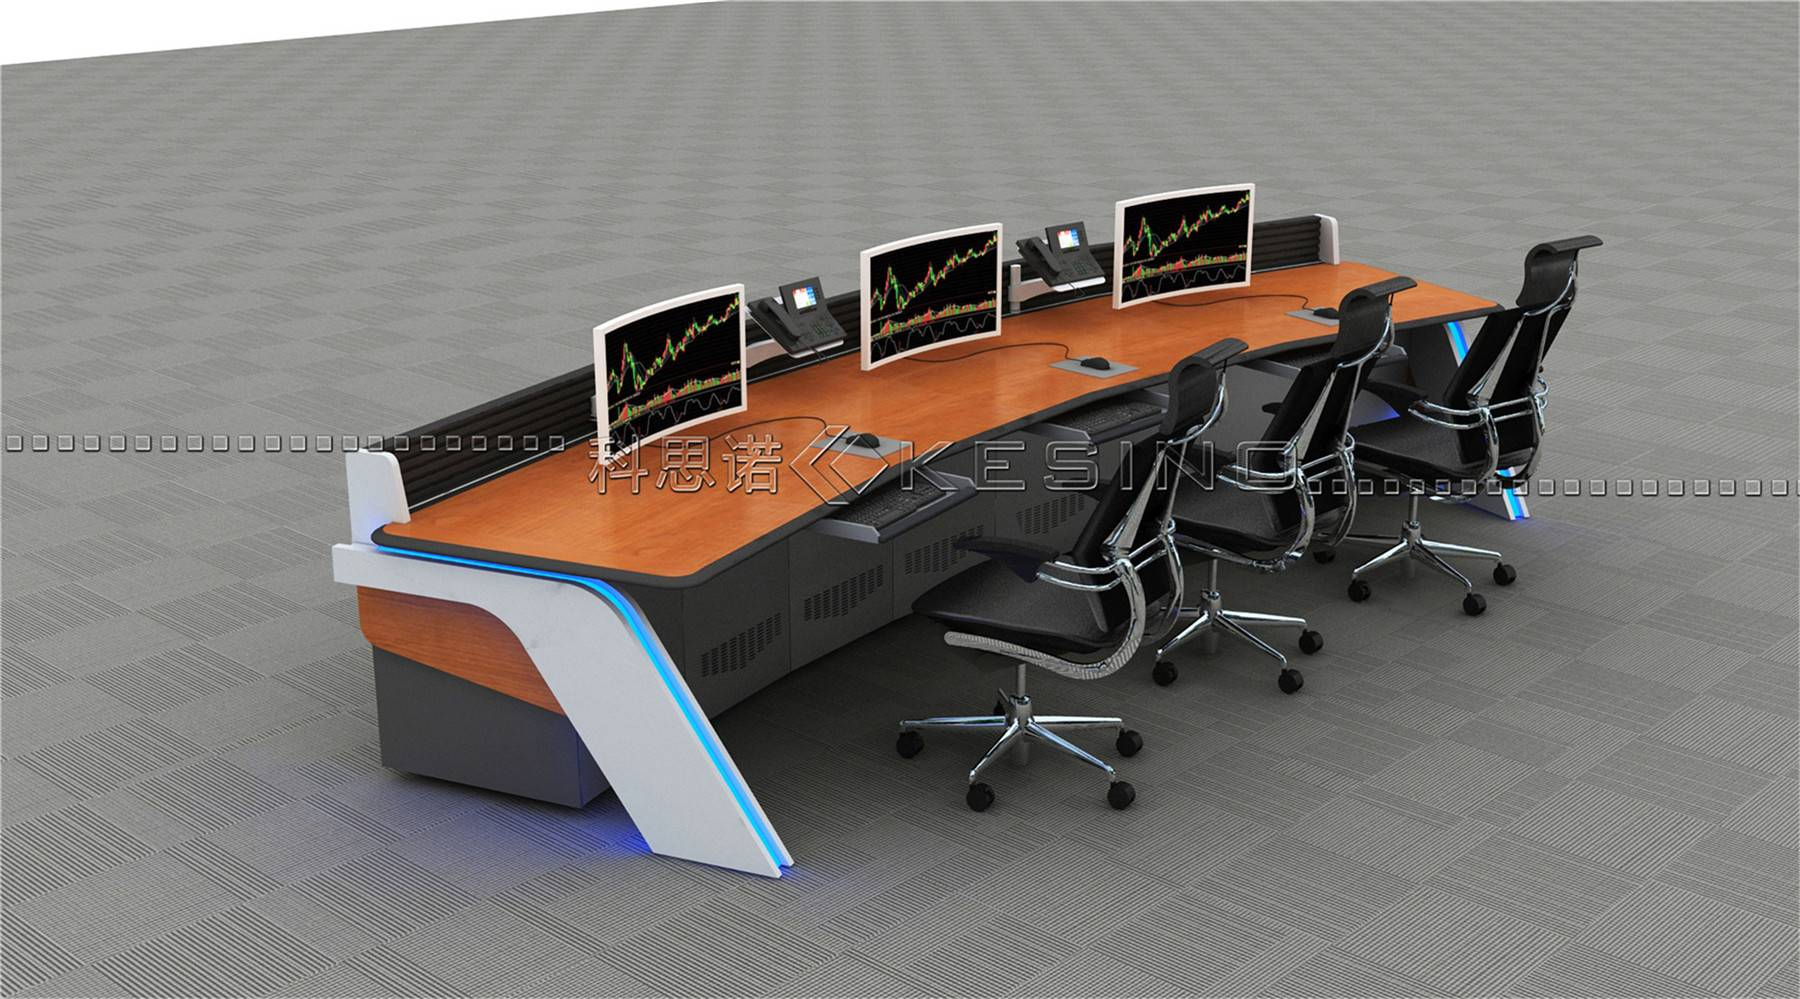 greenguard Certified scheduling control room console